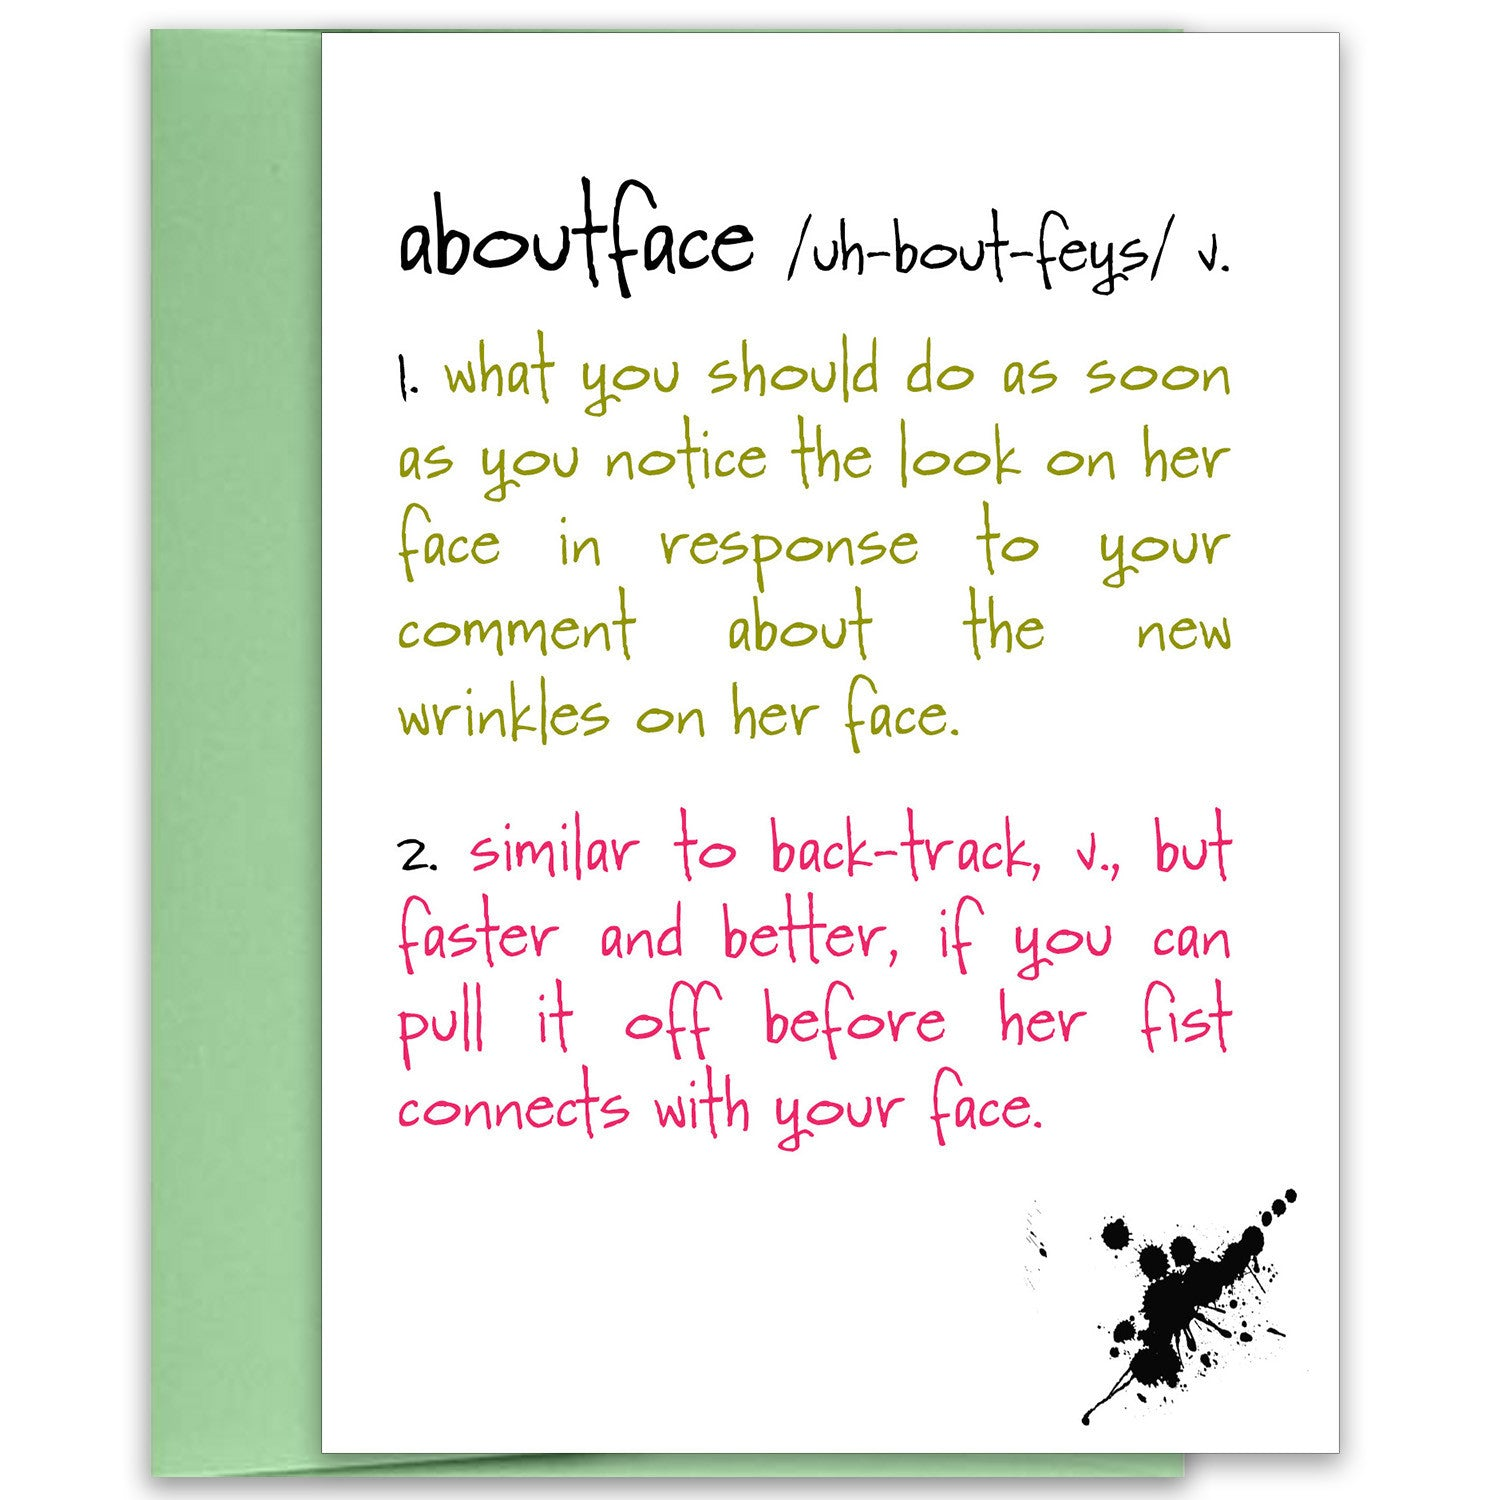 Aboutface - Funny Birthday Card for Friend